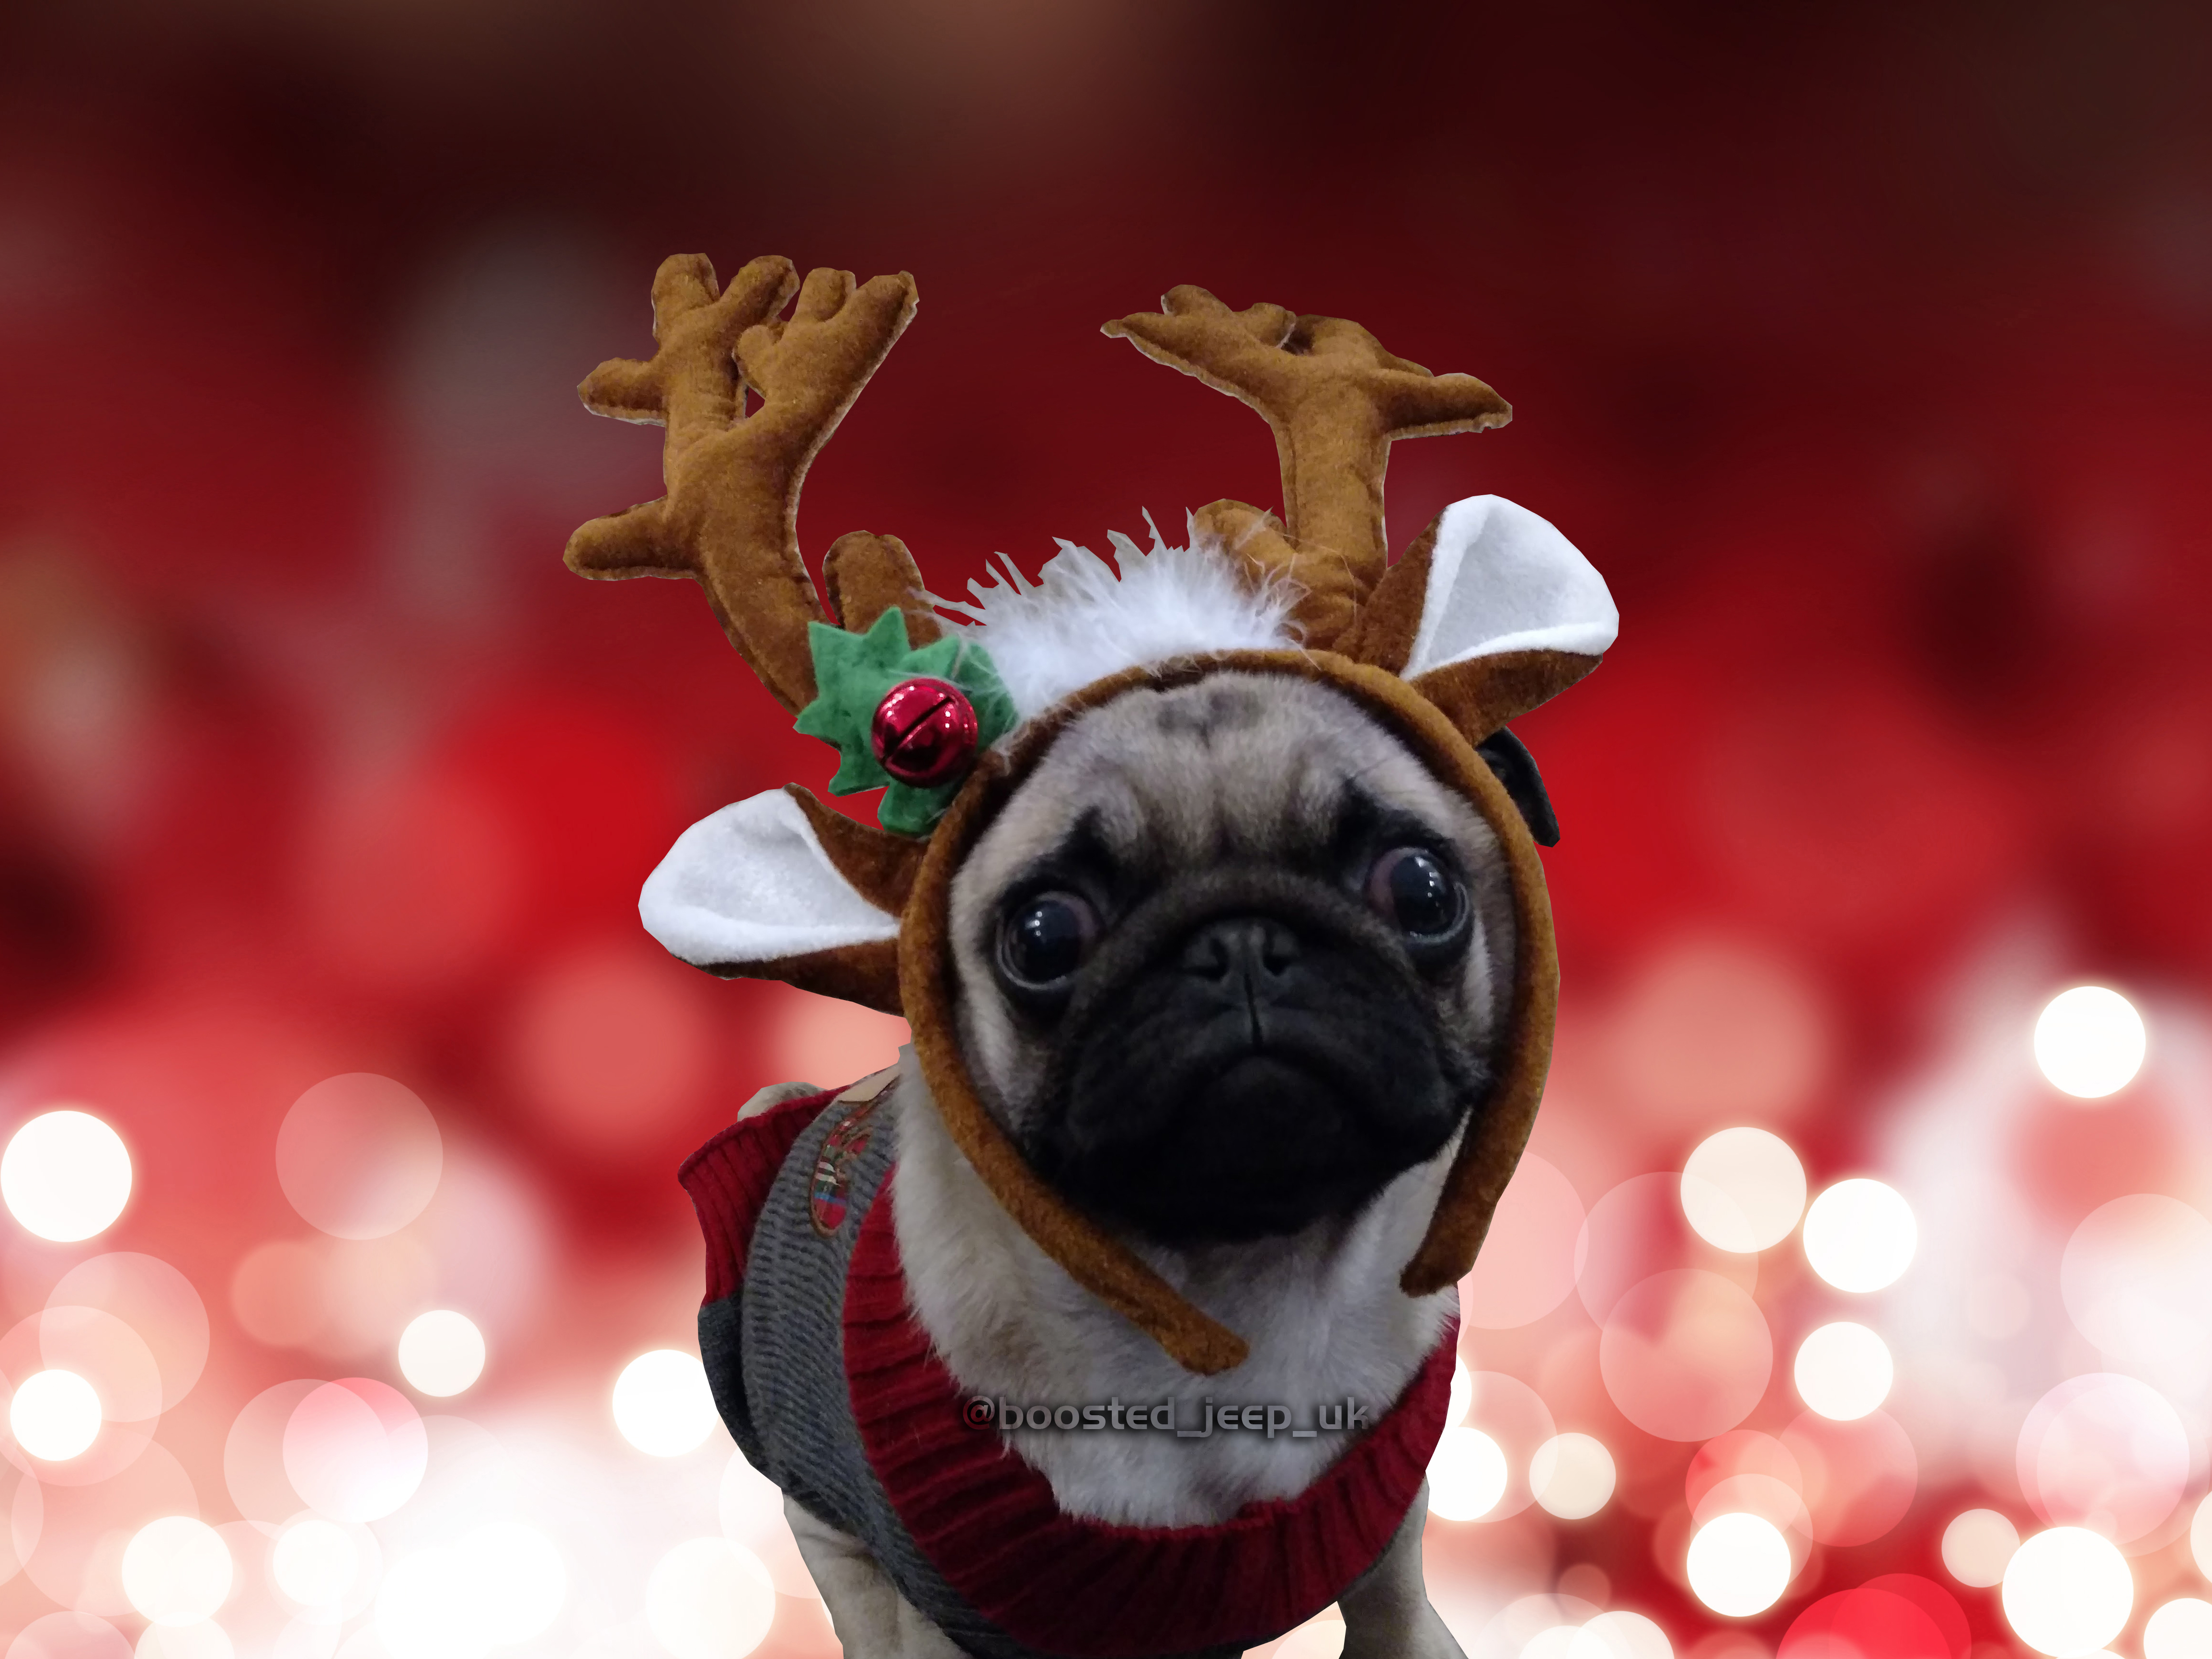 Dugg the Pug does Xmas